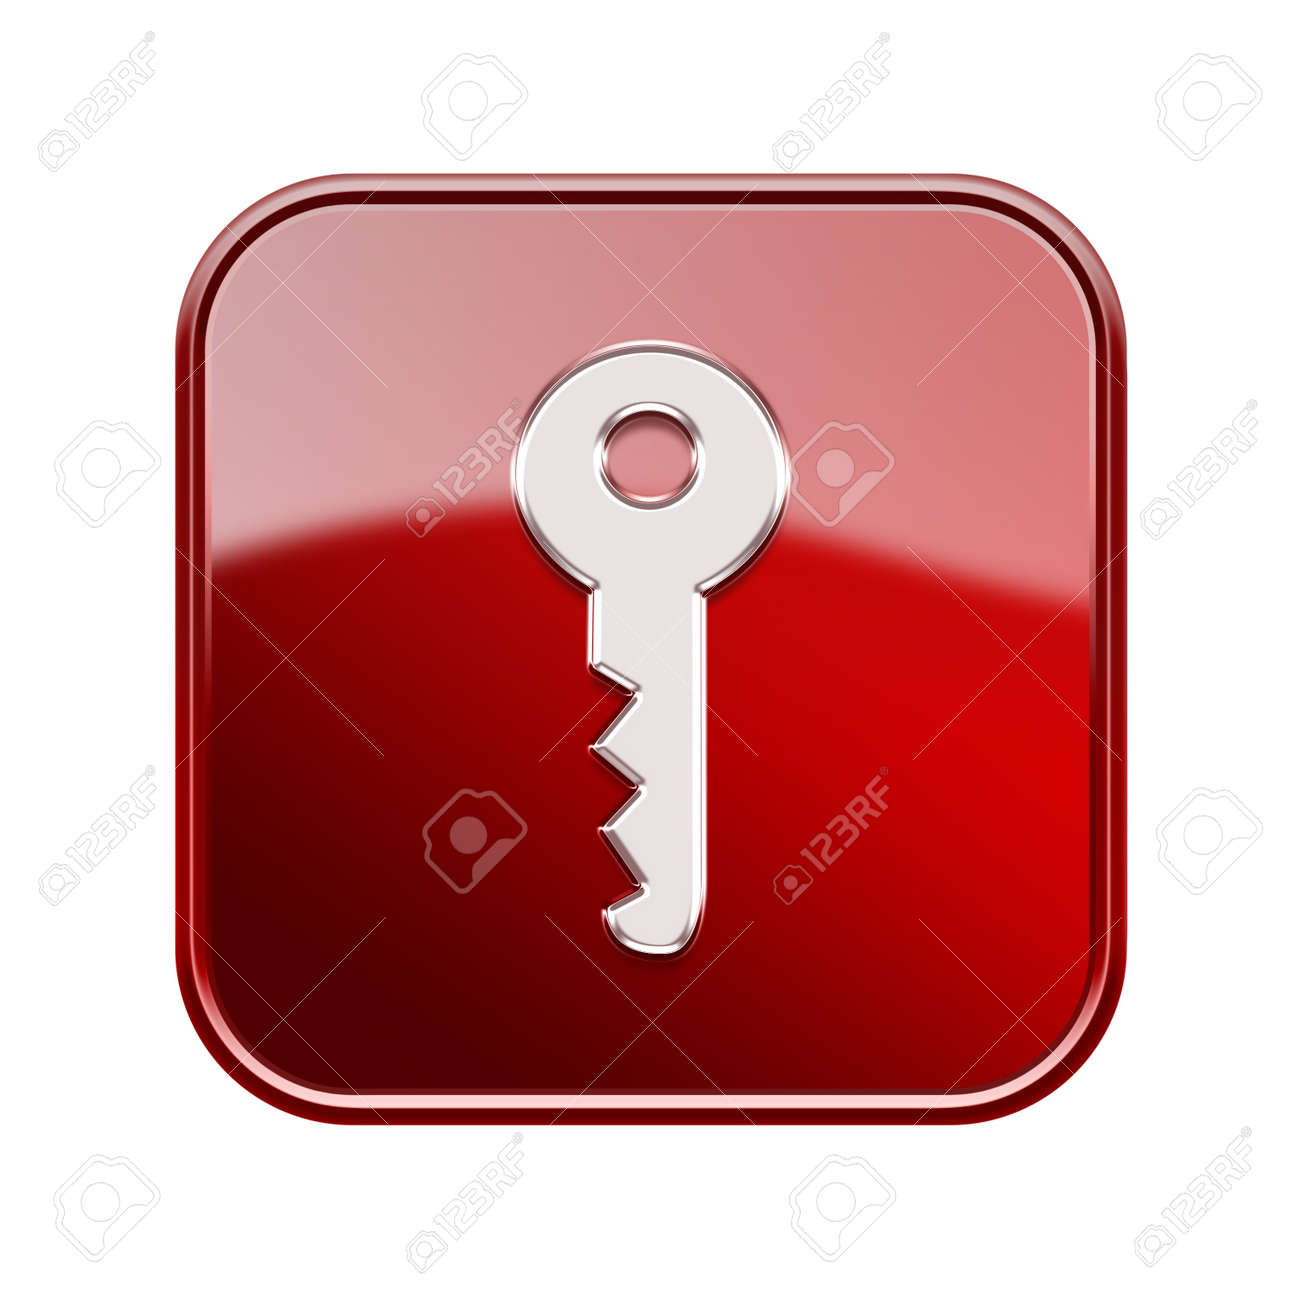 Key icon glossy red, isolated on white background Stock Photo - 16691333